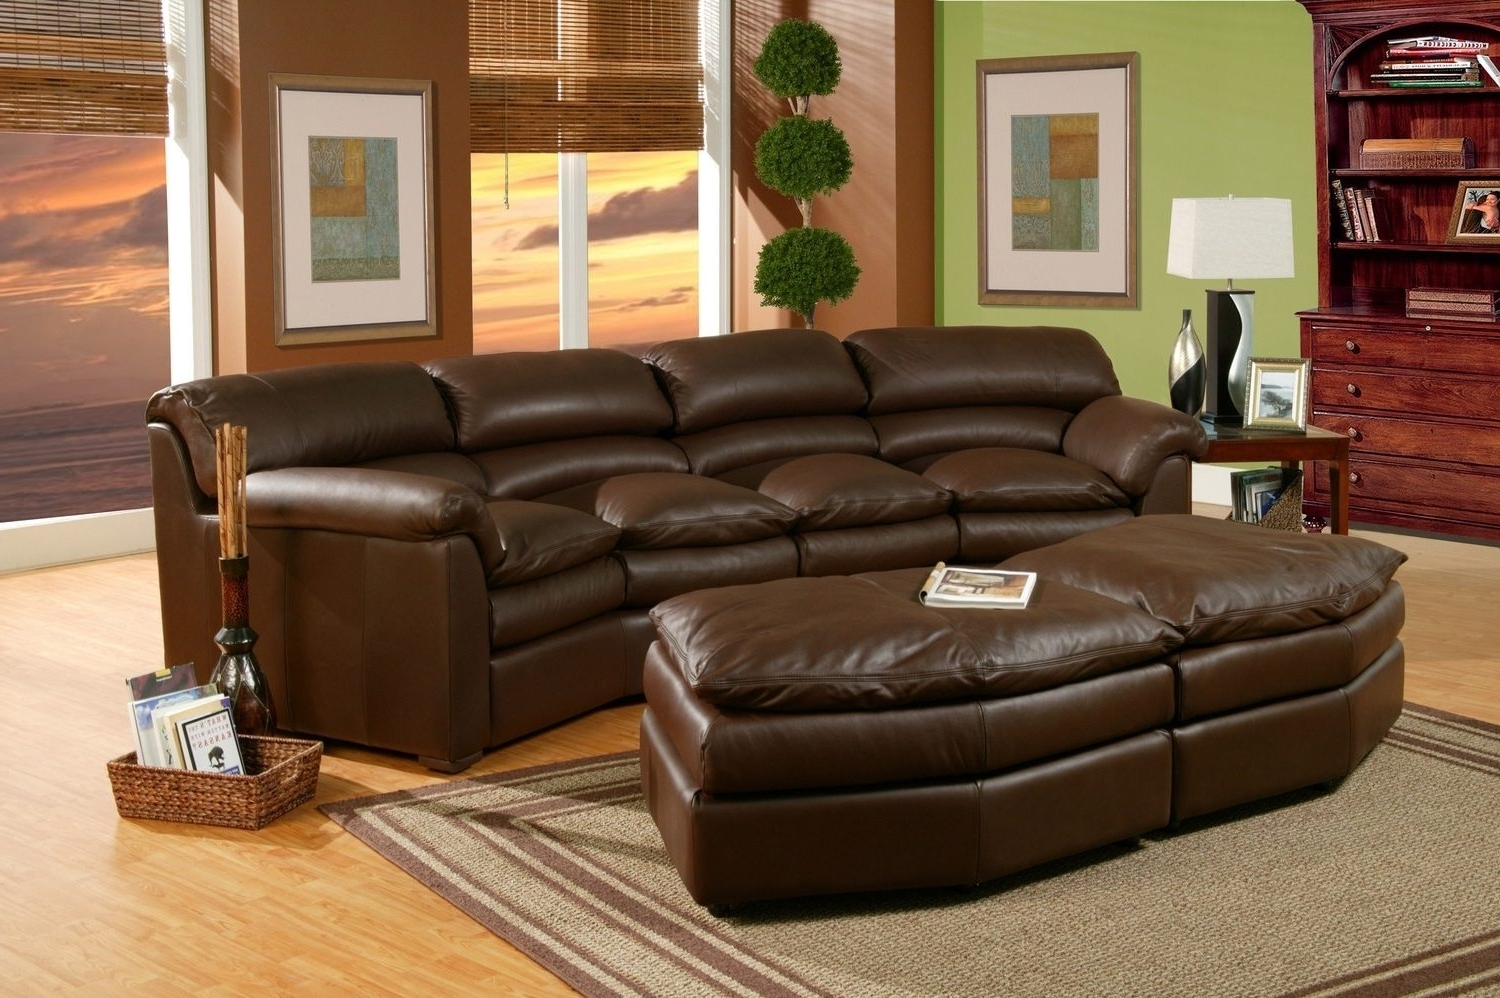 Theatre Sectional Sofas For Well Known Home Theater Sectional Sofa – Visionexchange (View 12 of 15)